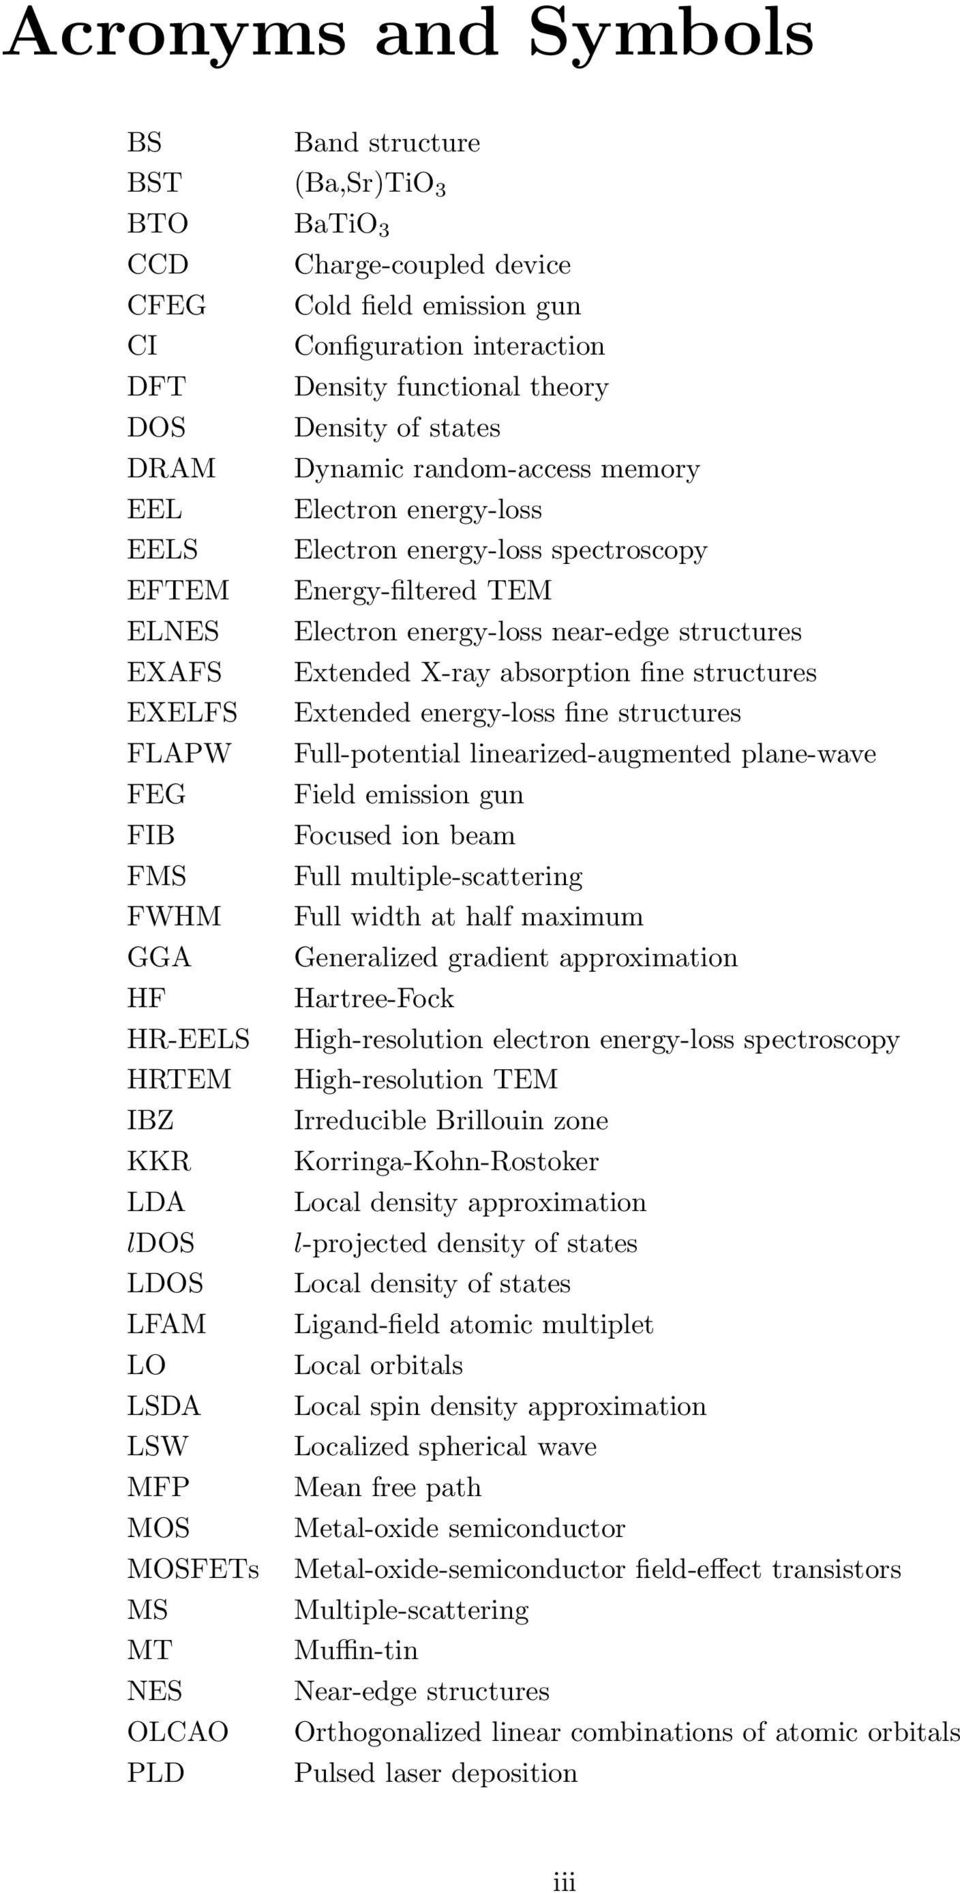 absorption fine structures EXELFS Extended energy-loss fine structures FLAPW Full-potential linearized-augmented plane-wave FEG Field emission gun FIB Focused ion beam FMS Full multiple-scattering